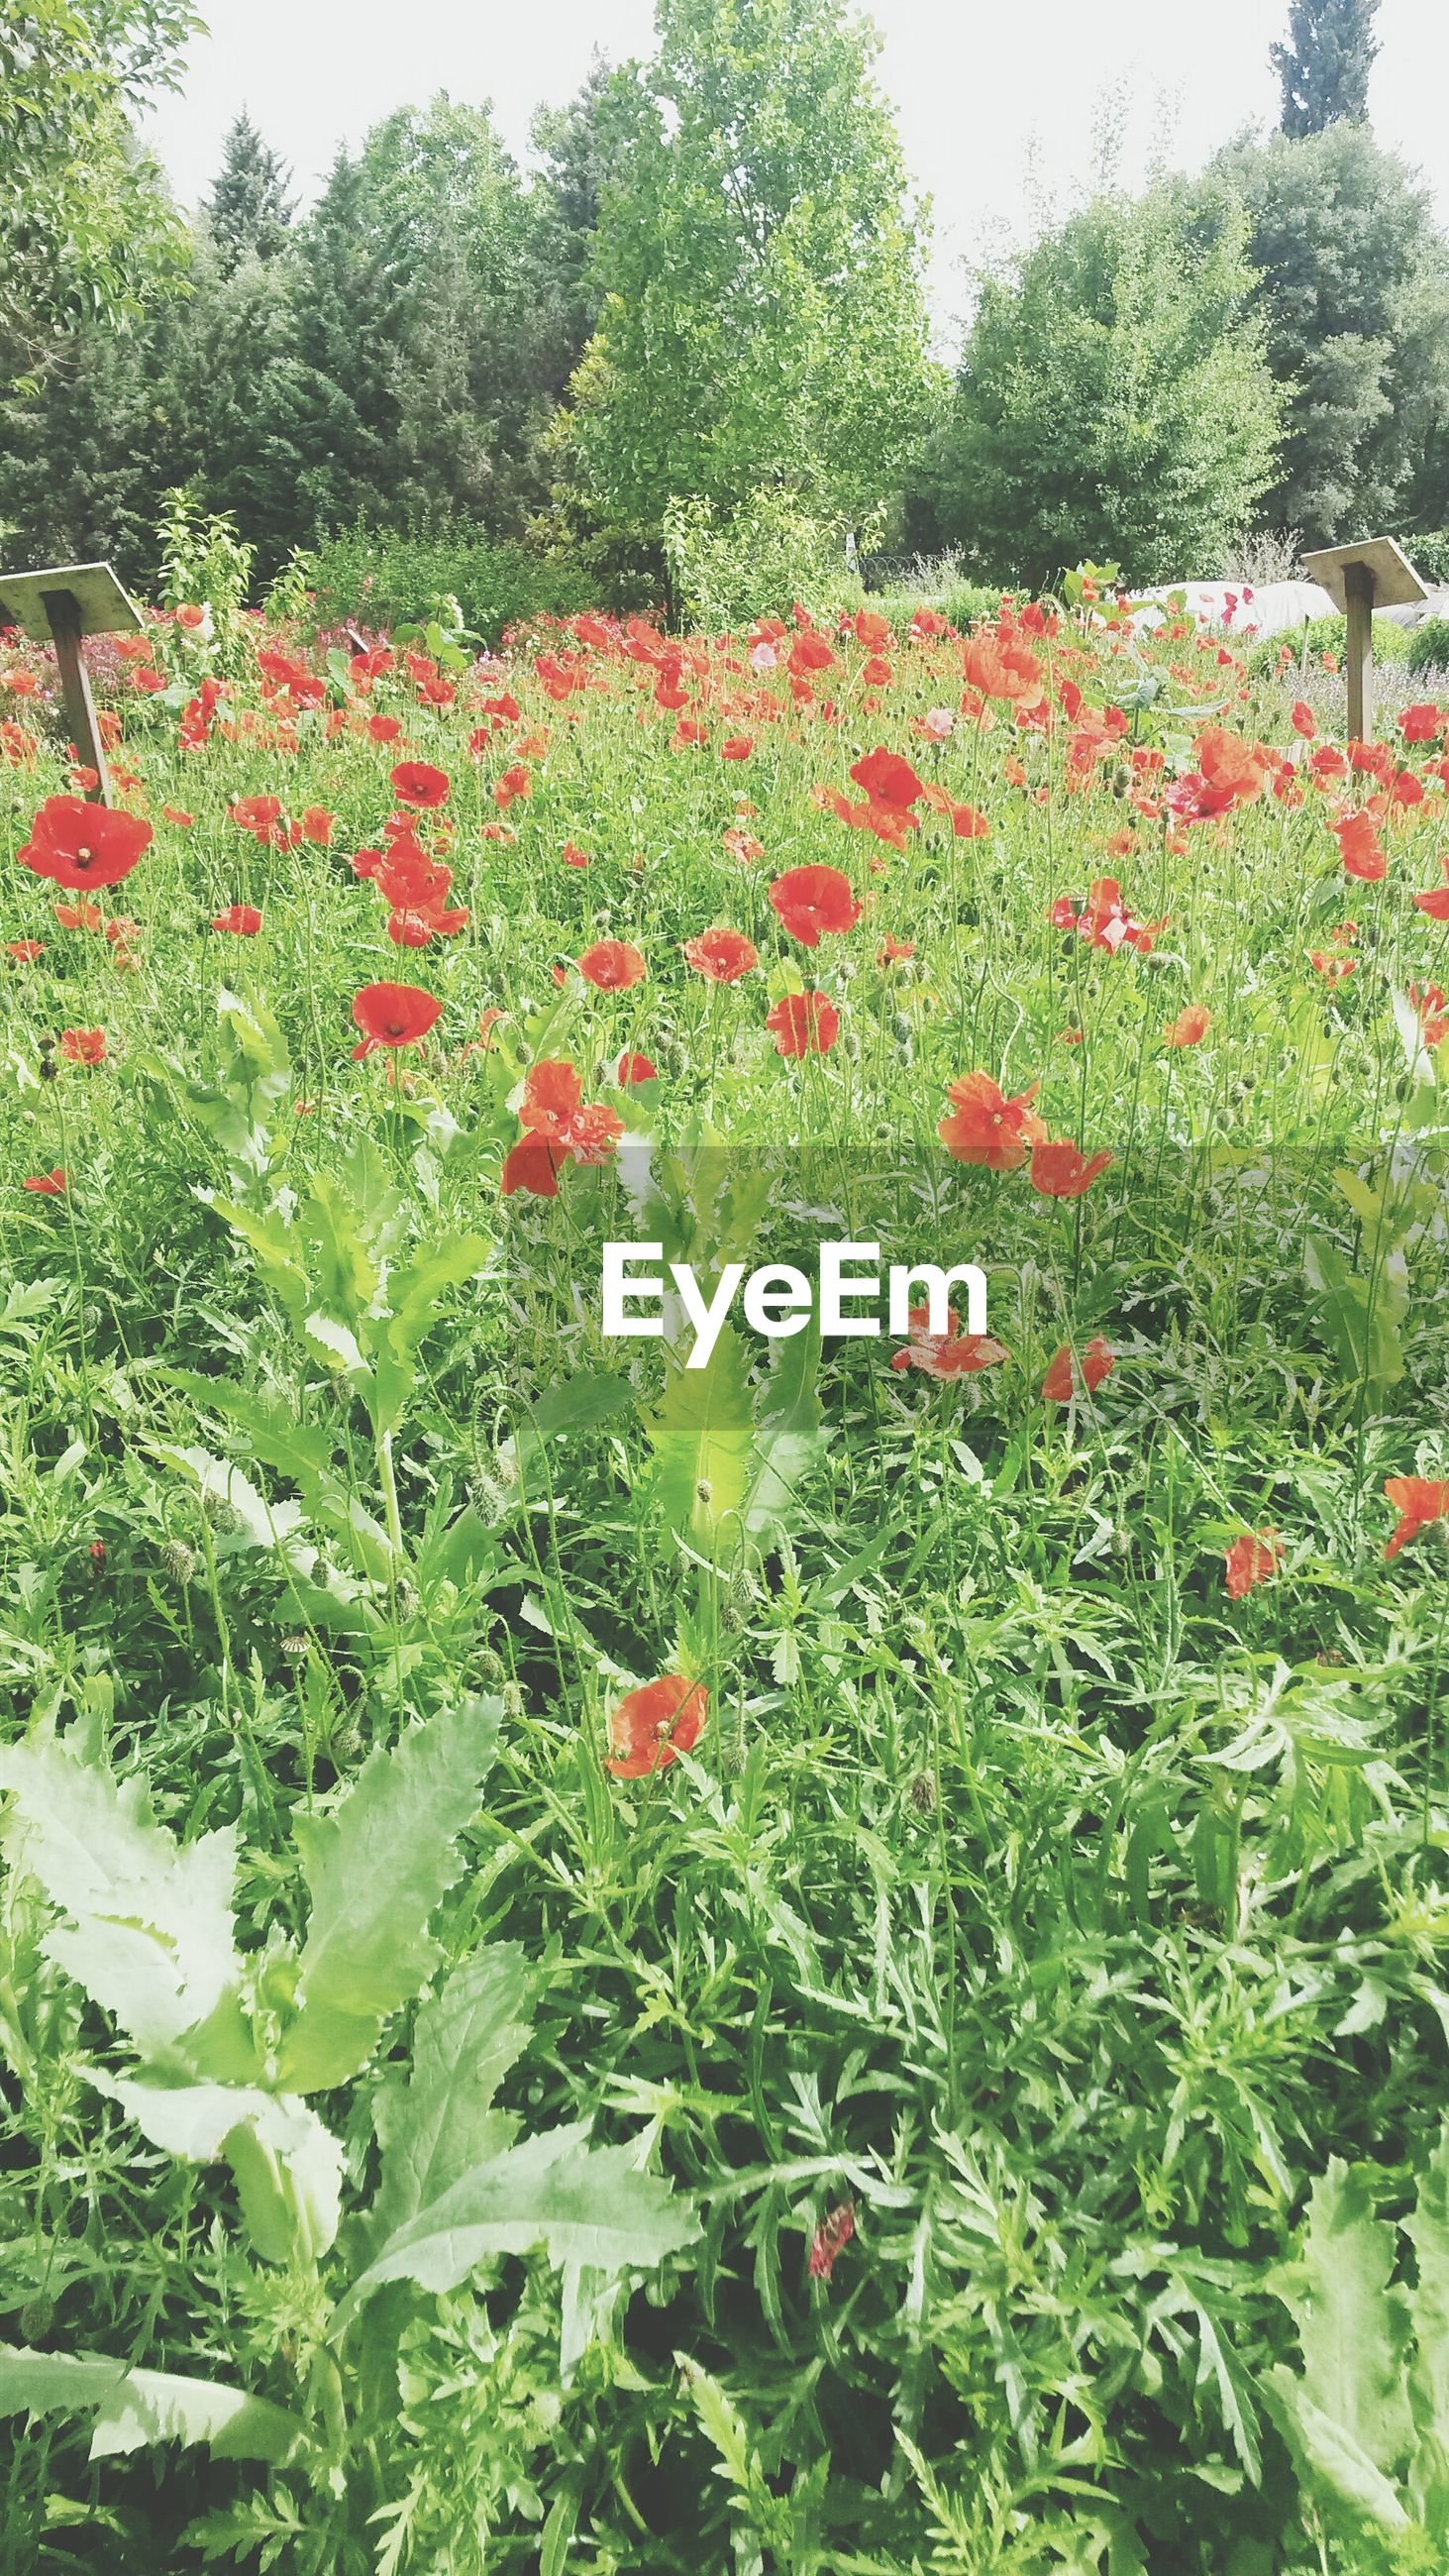 flower, growth, freshness, beauty in nature, plant, nature, red, fragility, blooming, tree, green color, field, petal, park - man made space, in bloom, tranquility, growing, sunlight, blossom, day